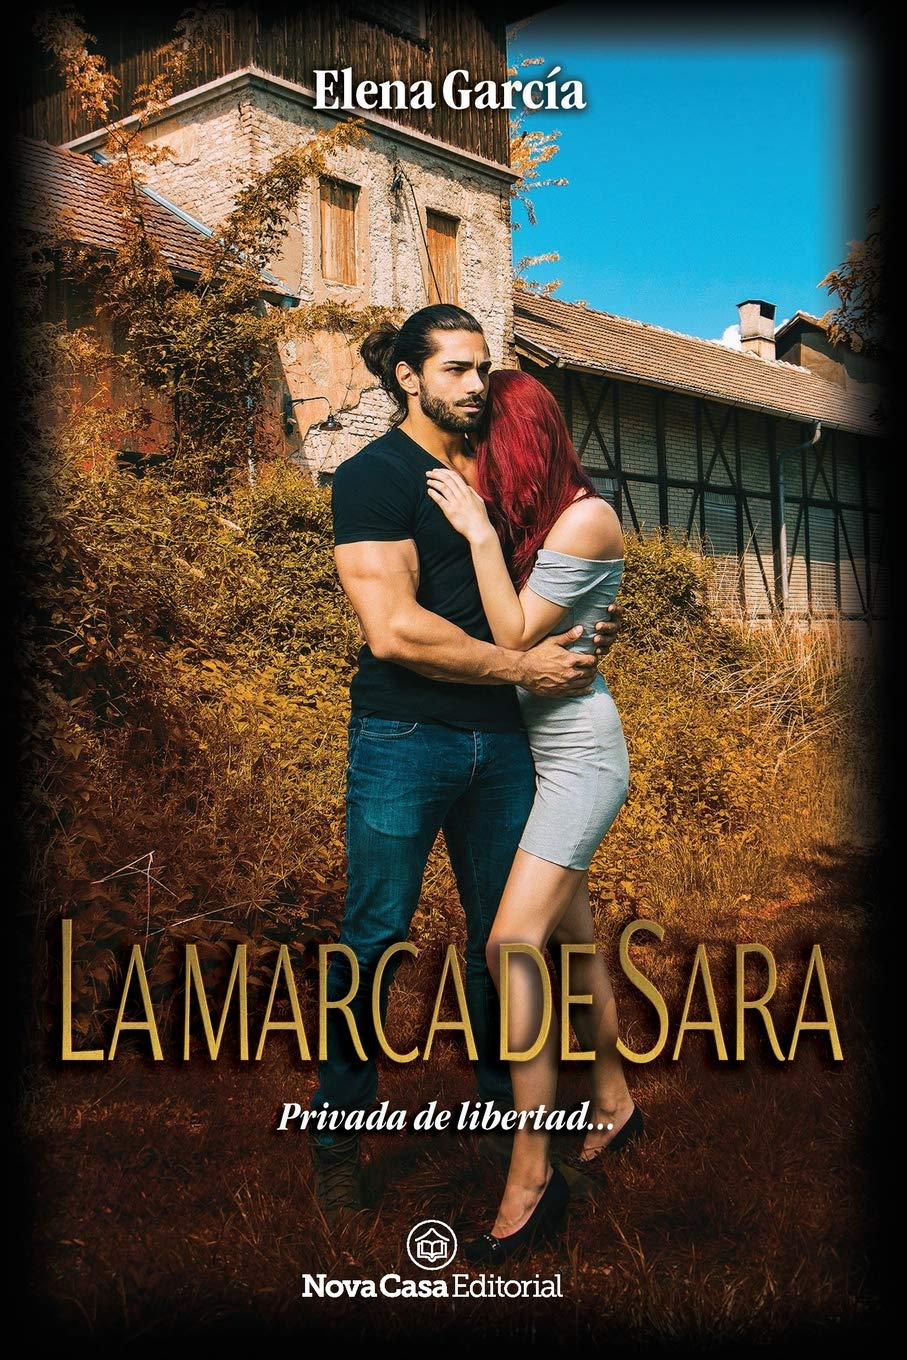 La Marca de Sara (Spanish Edition): Elena García: 9788417142001: Amazon.com: Books